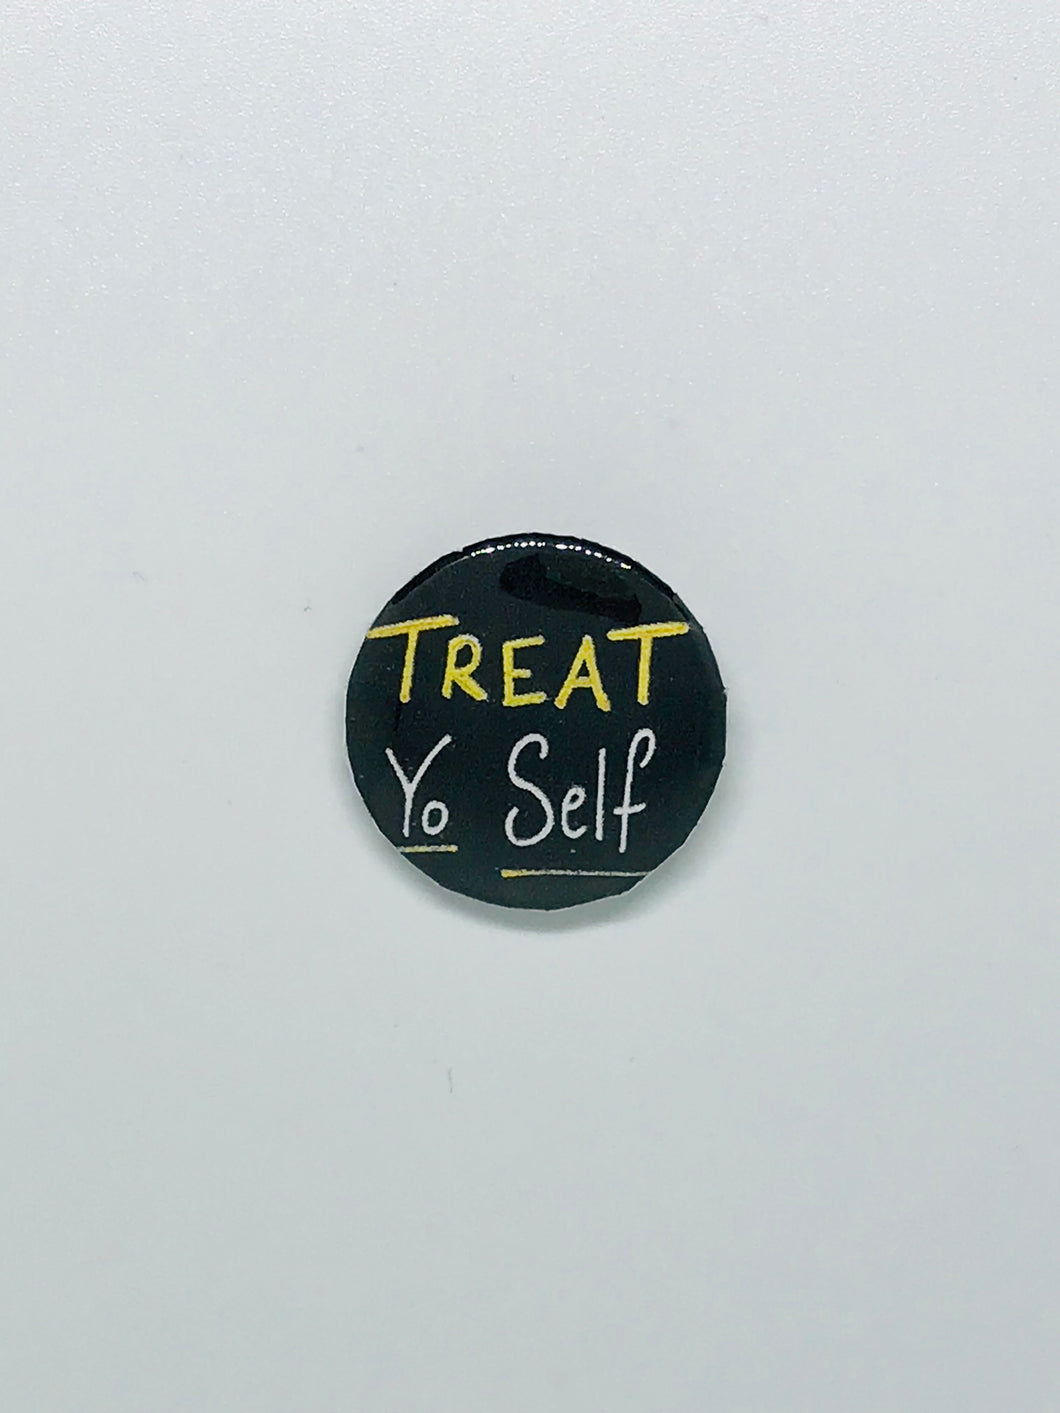 Treat Yo Self Button